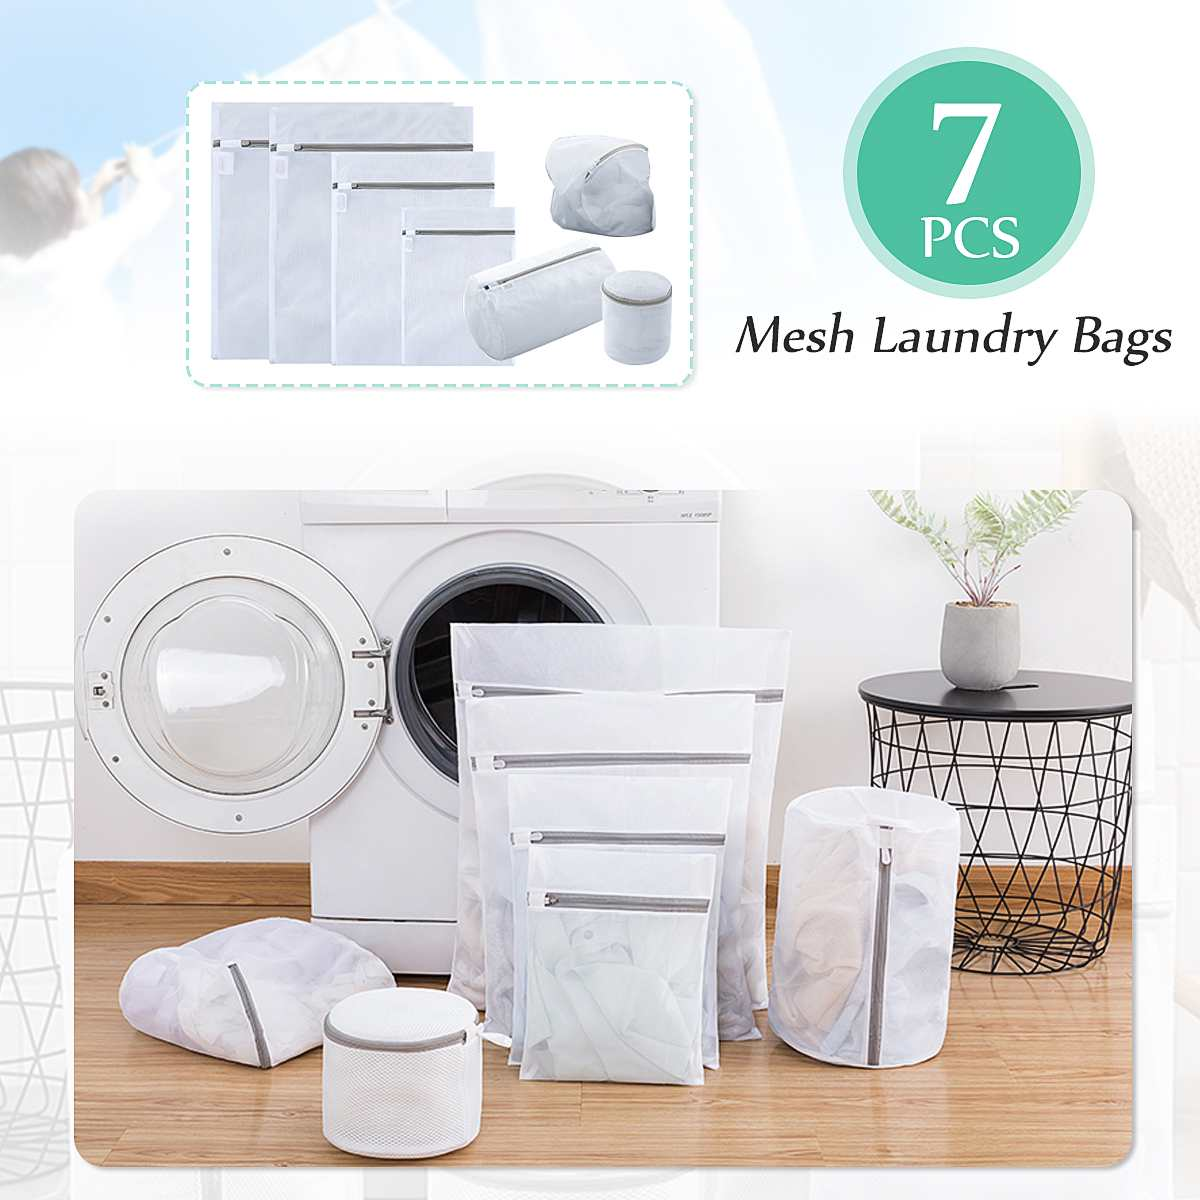 7Pcs/set Thicken Clothes Washing Machine Laundry Bag Tote T-Shirt Underwear Socks Clothes Lingerie Mesh Net Zipper Storage